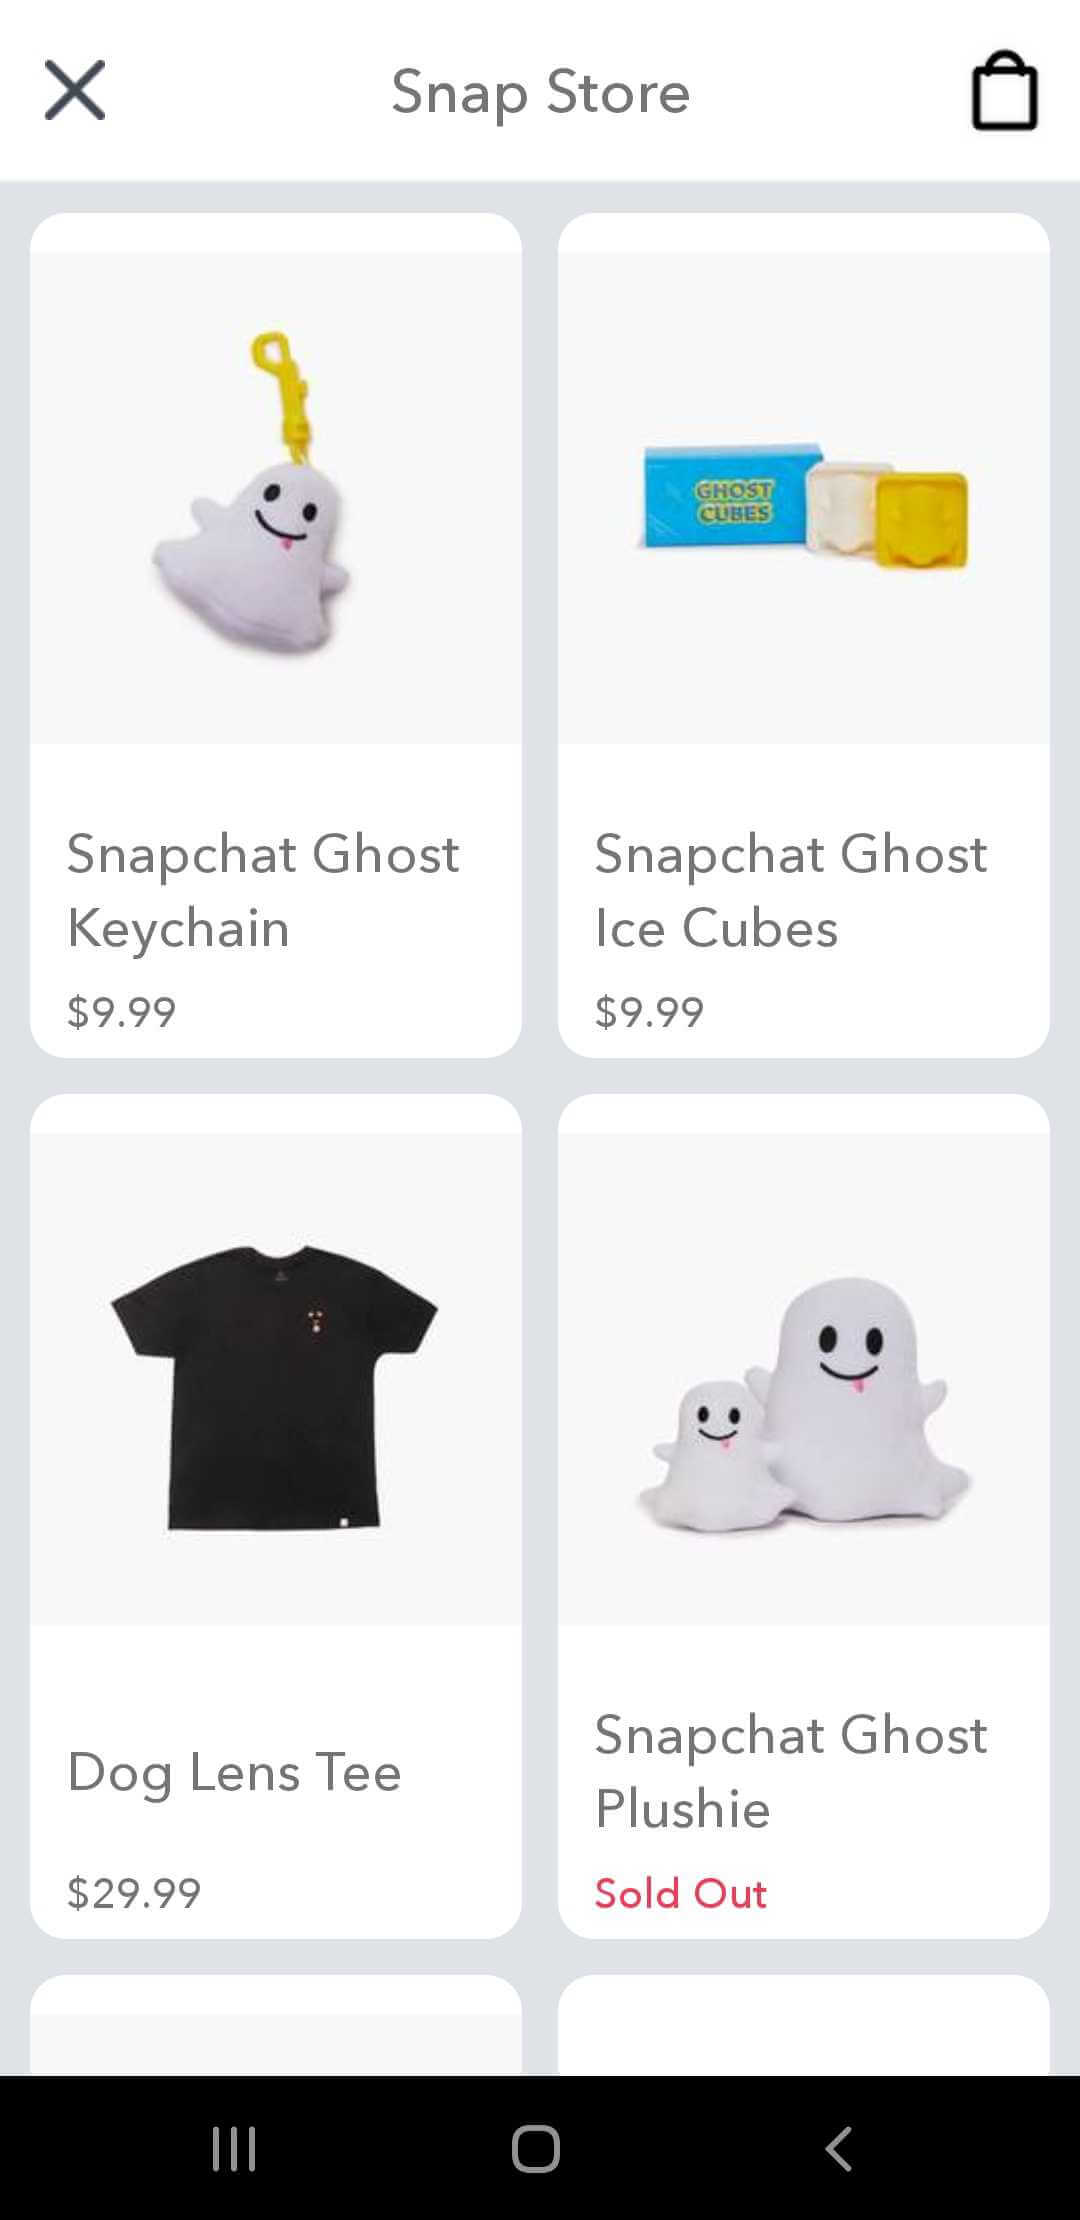 the main page of Snap store